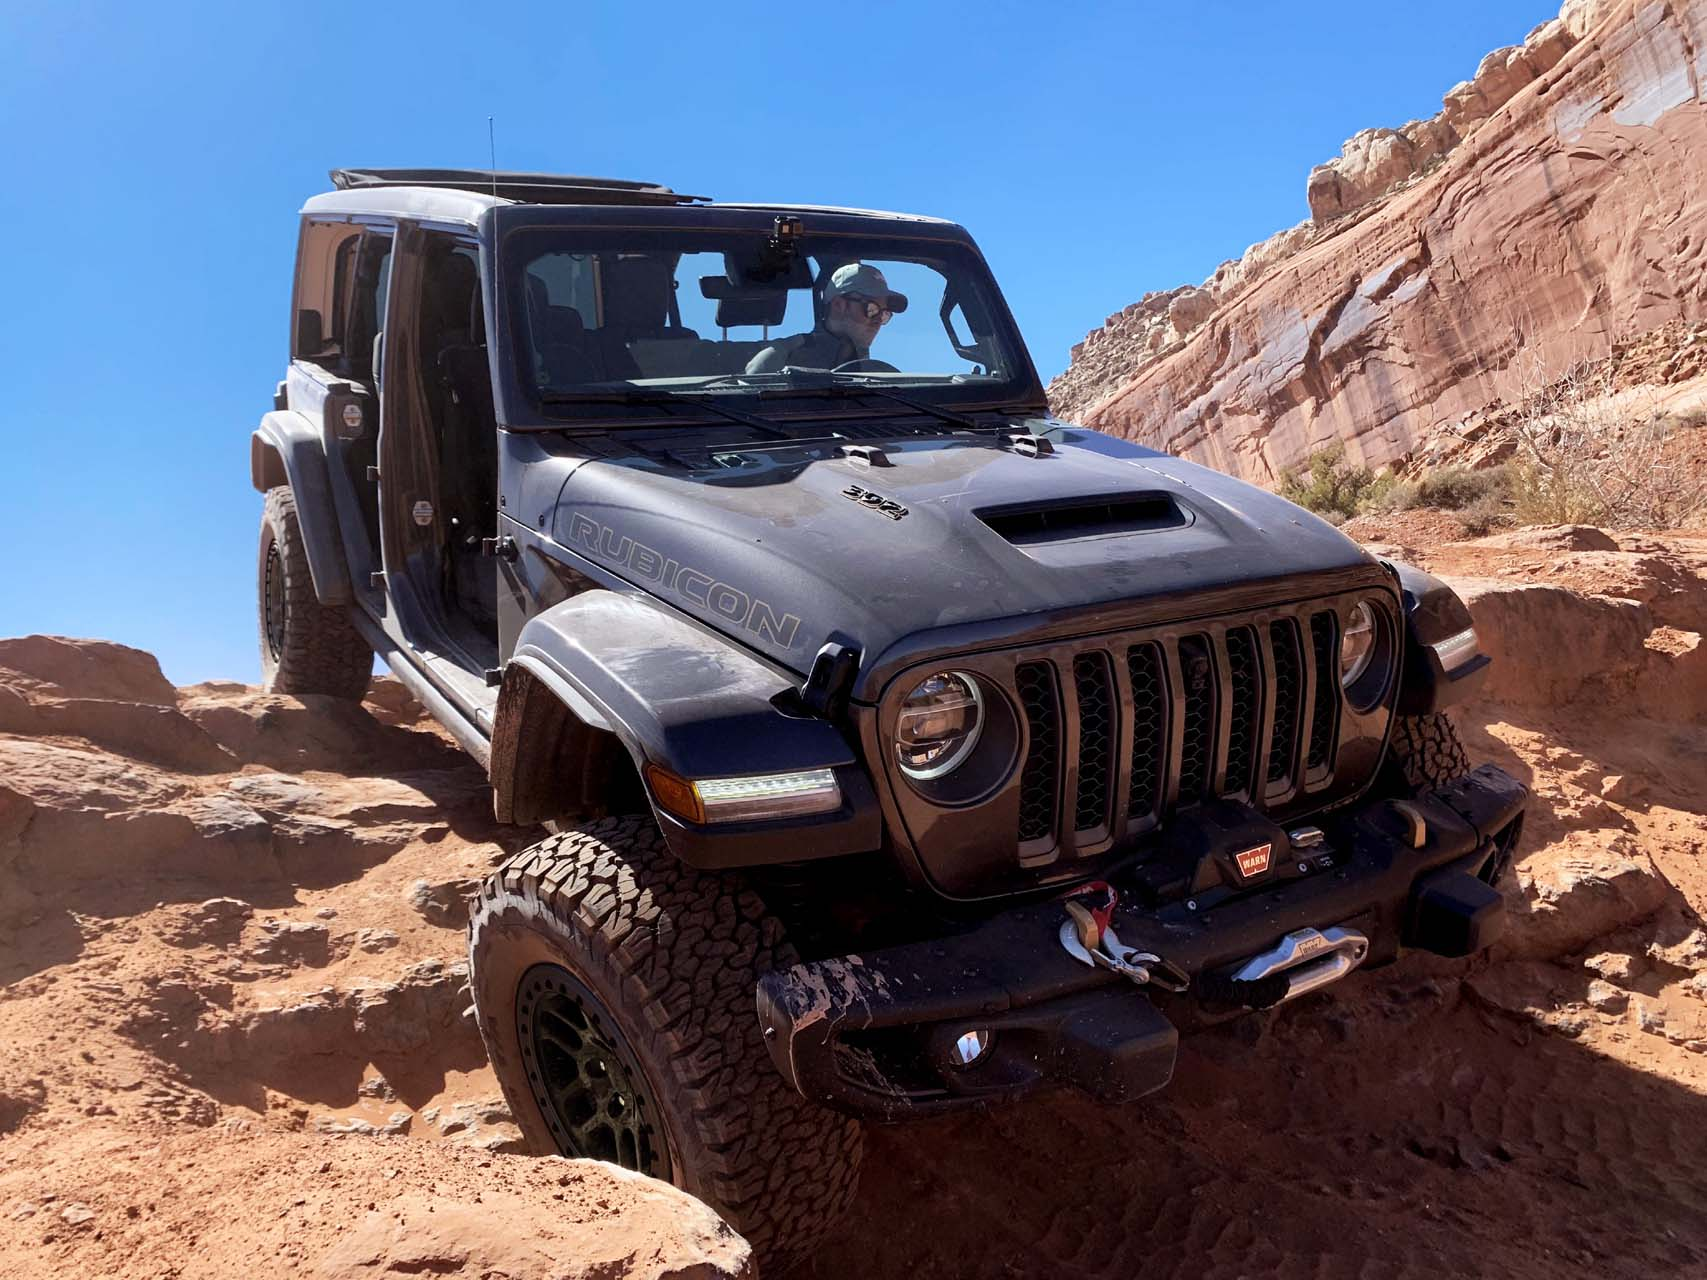 Jeep Wrangler Rubicon 392 and the Xtreme Recon Package